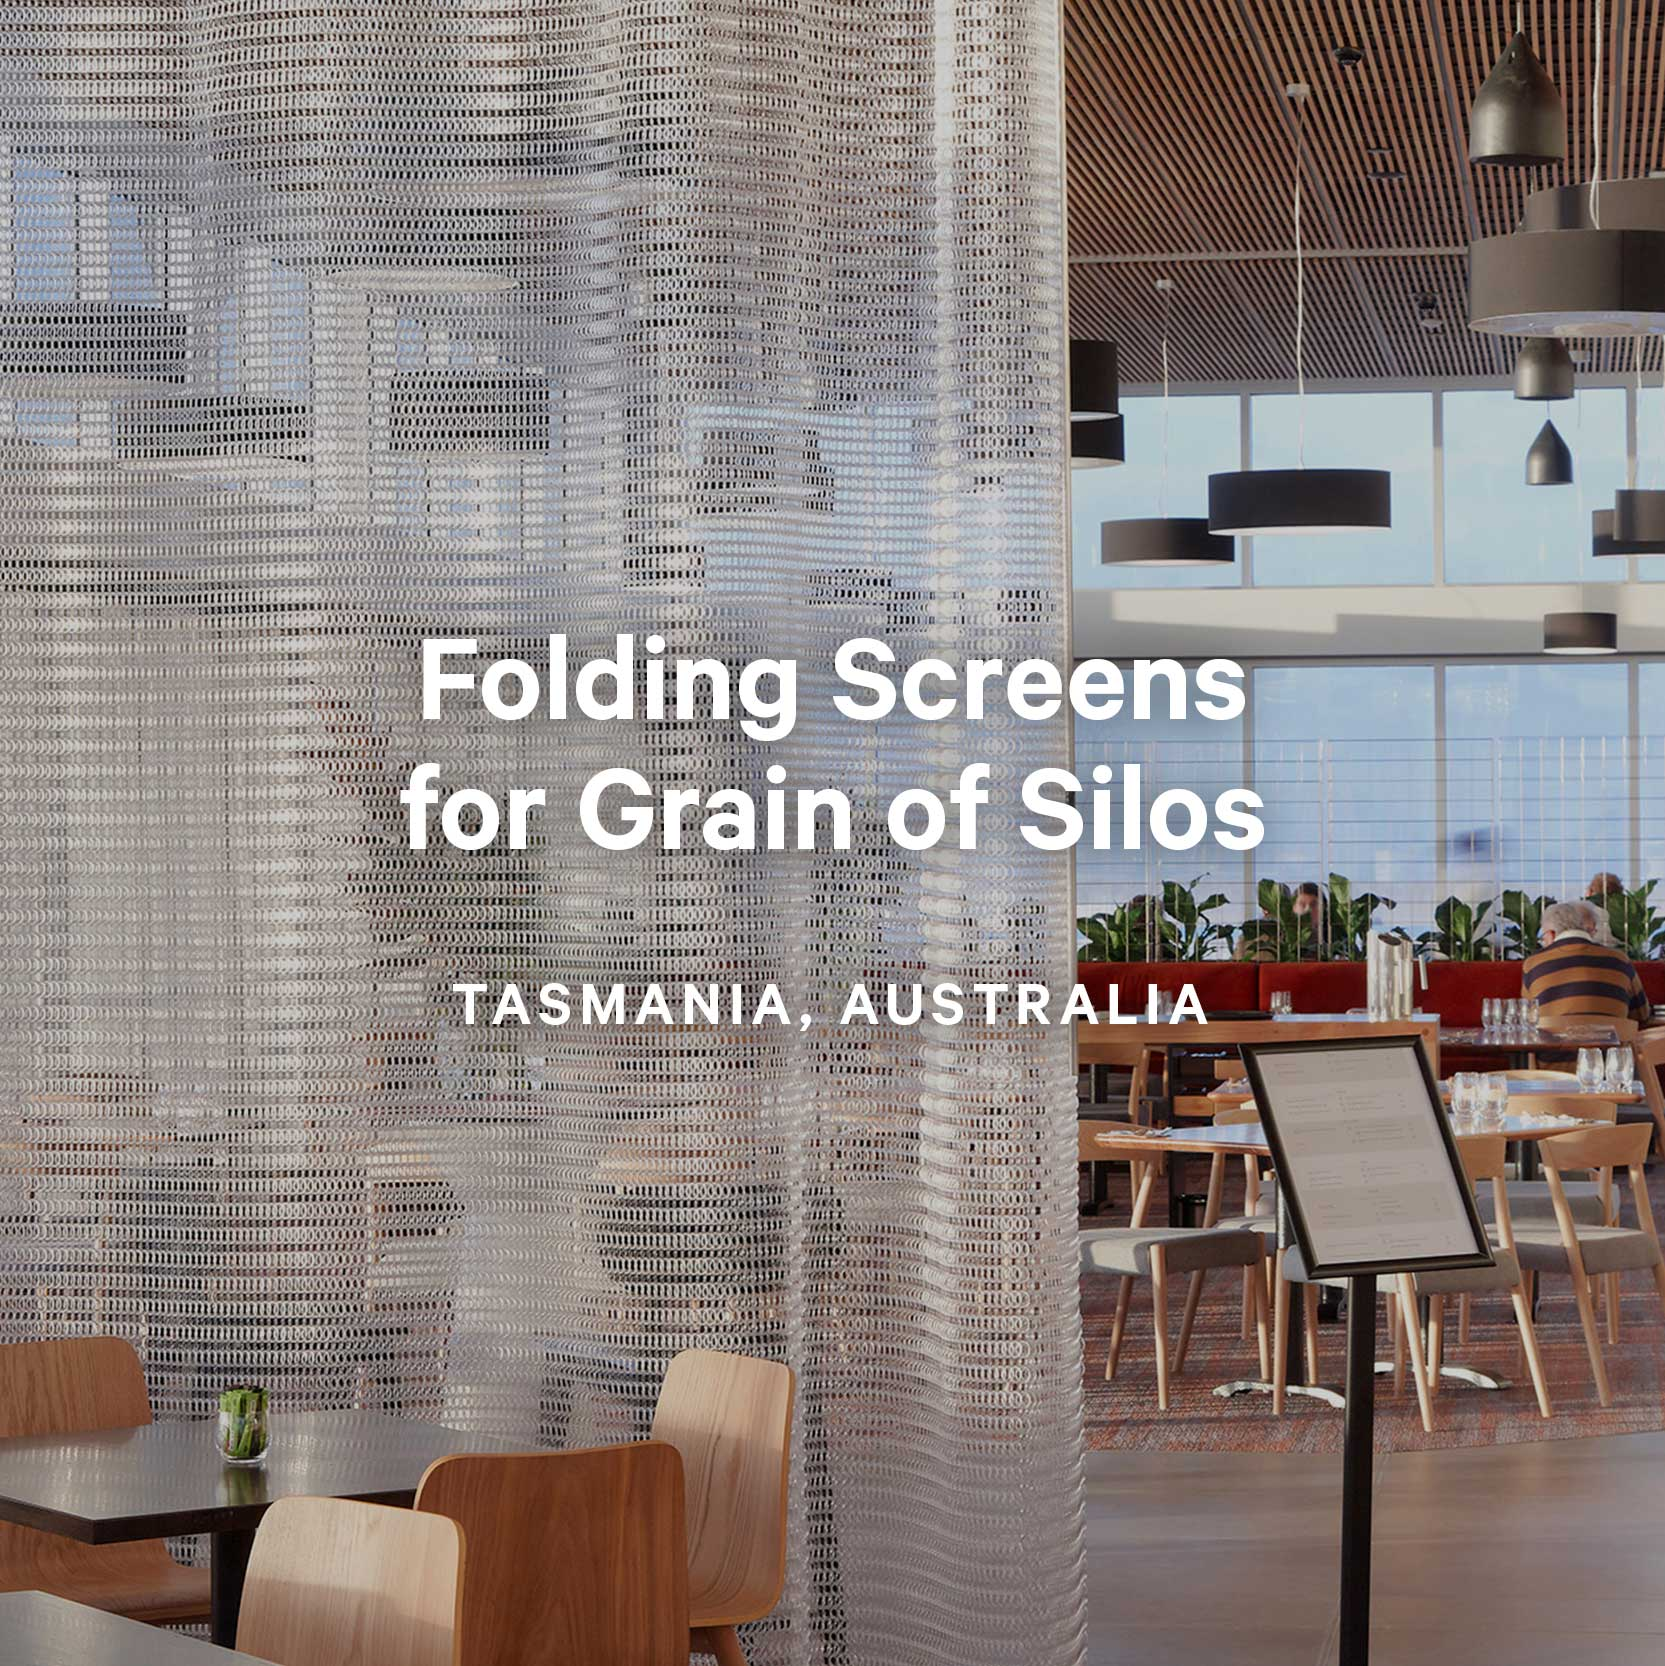 Folding Screens for Grain of Silos